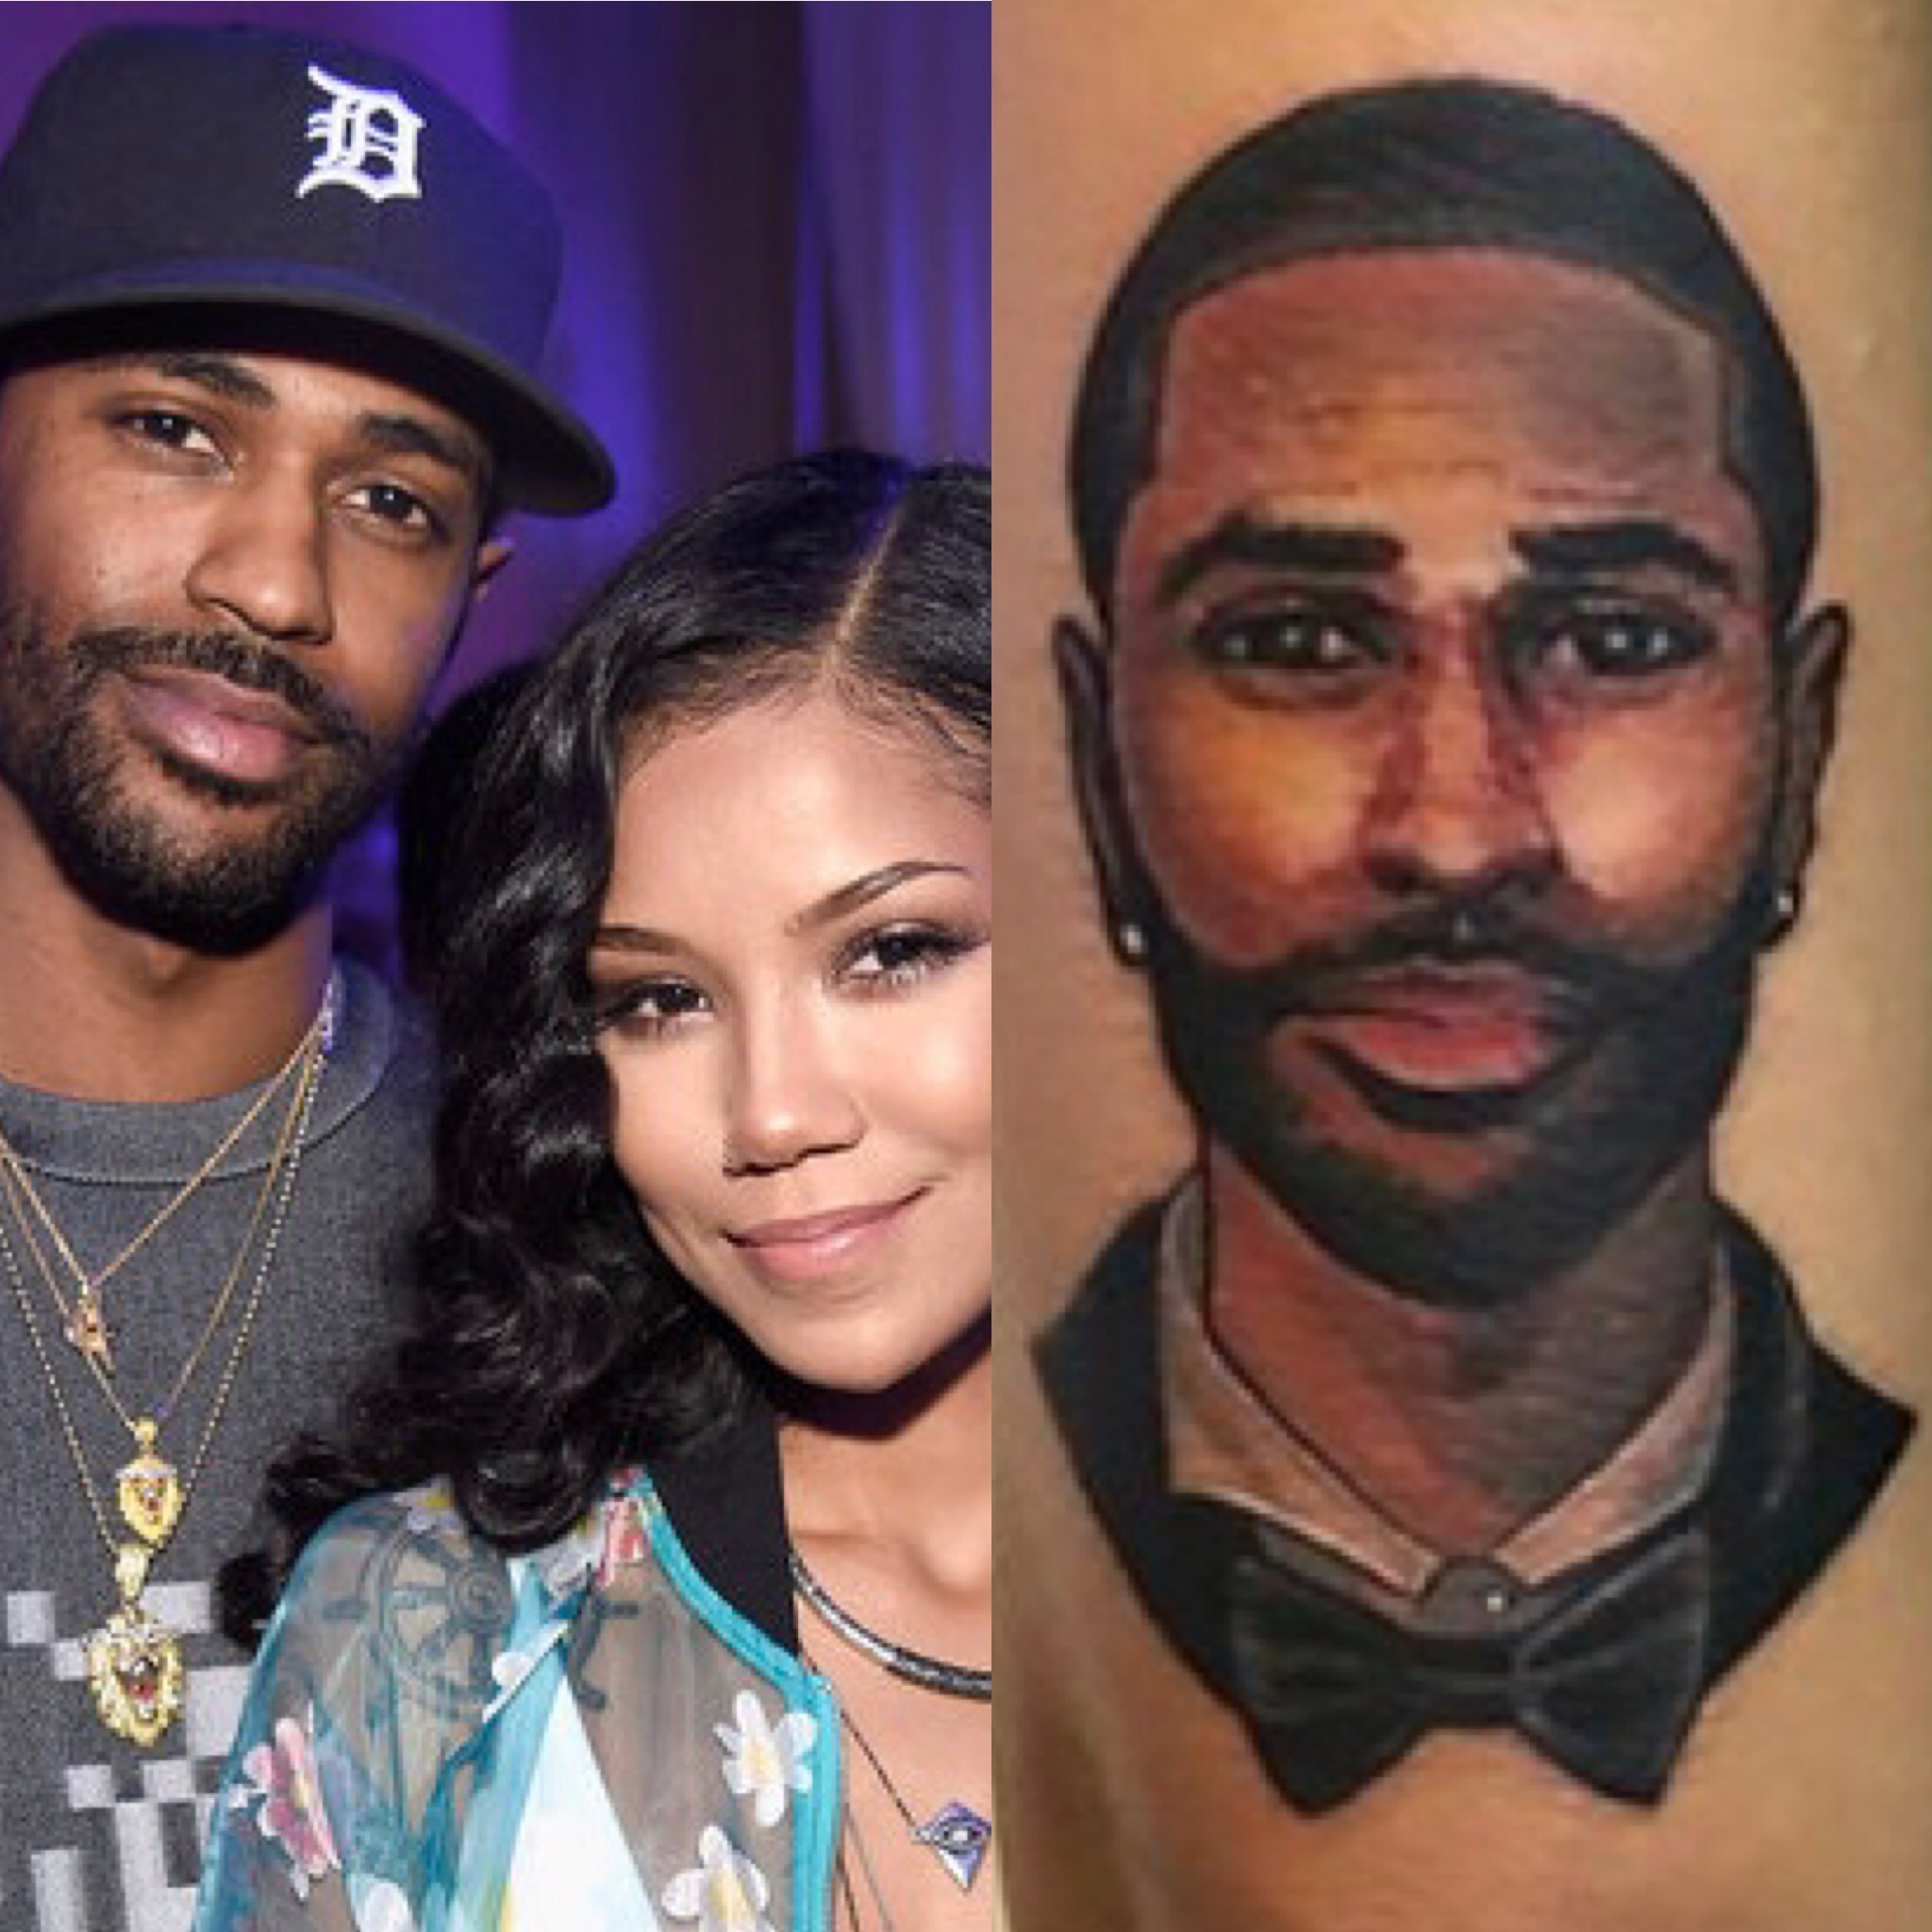 Jhene aiko tattoos images galleries for Big sean tattoos